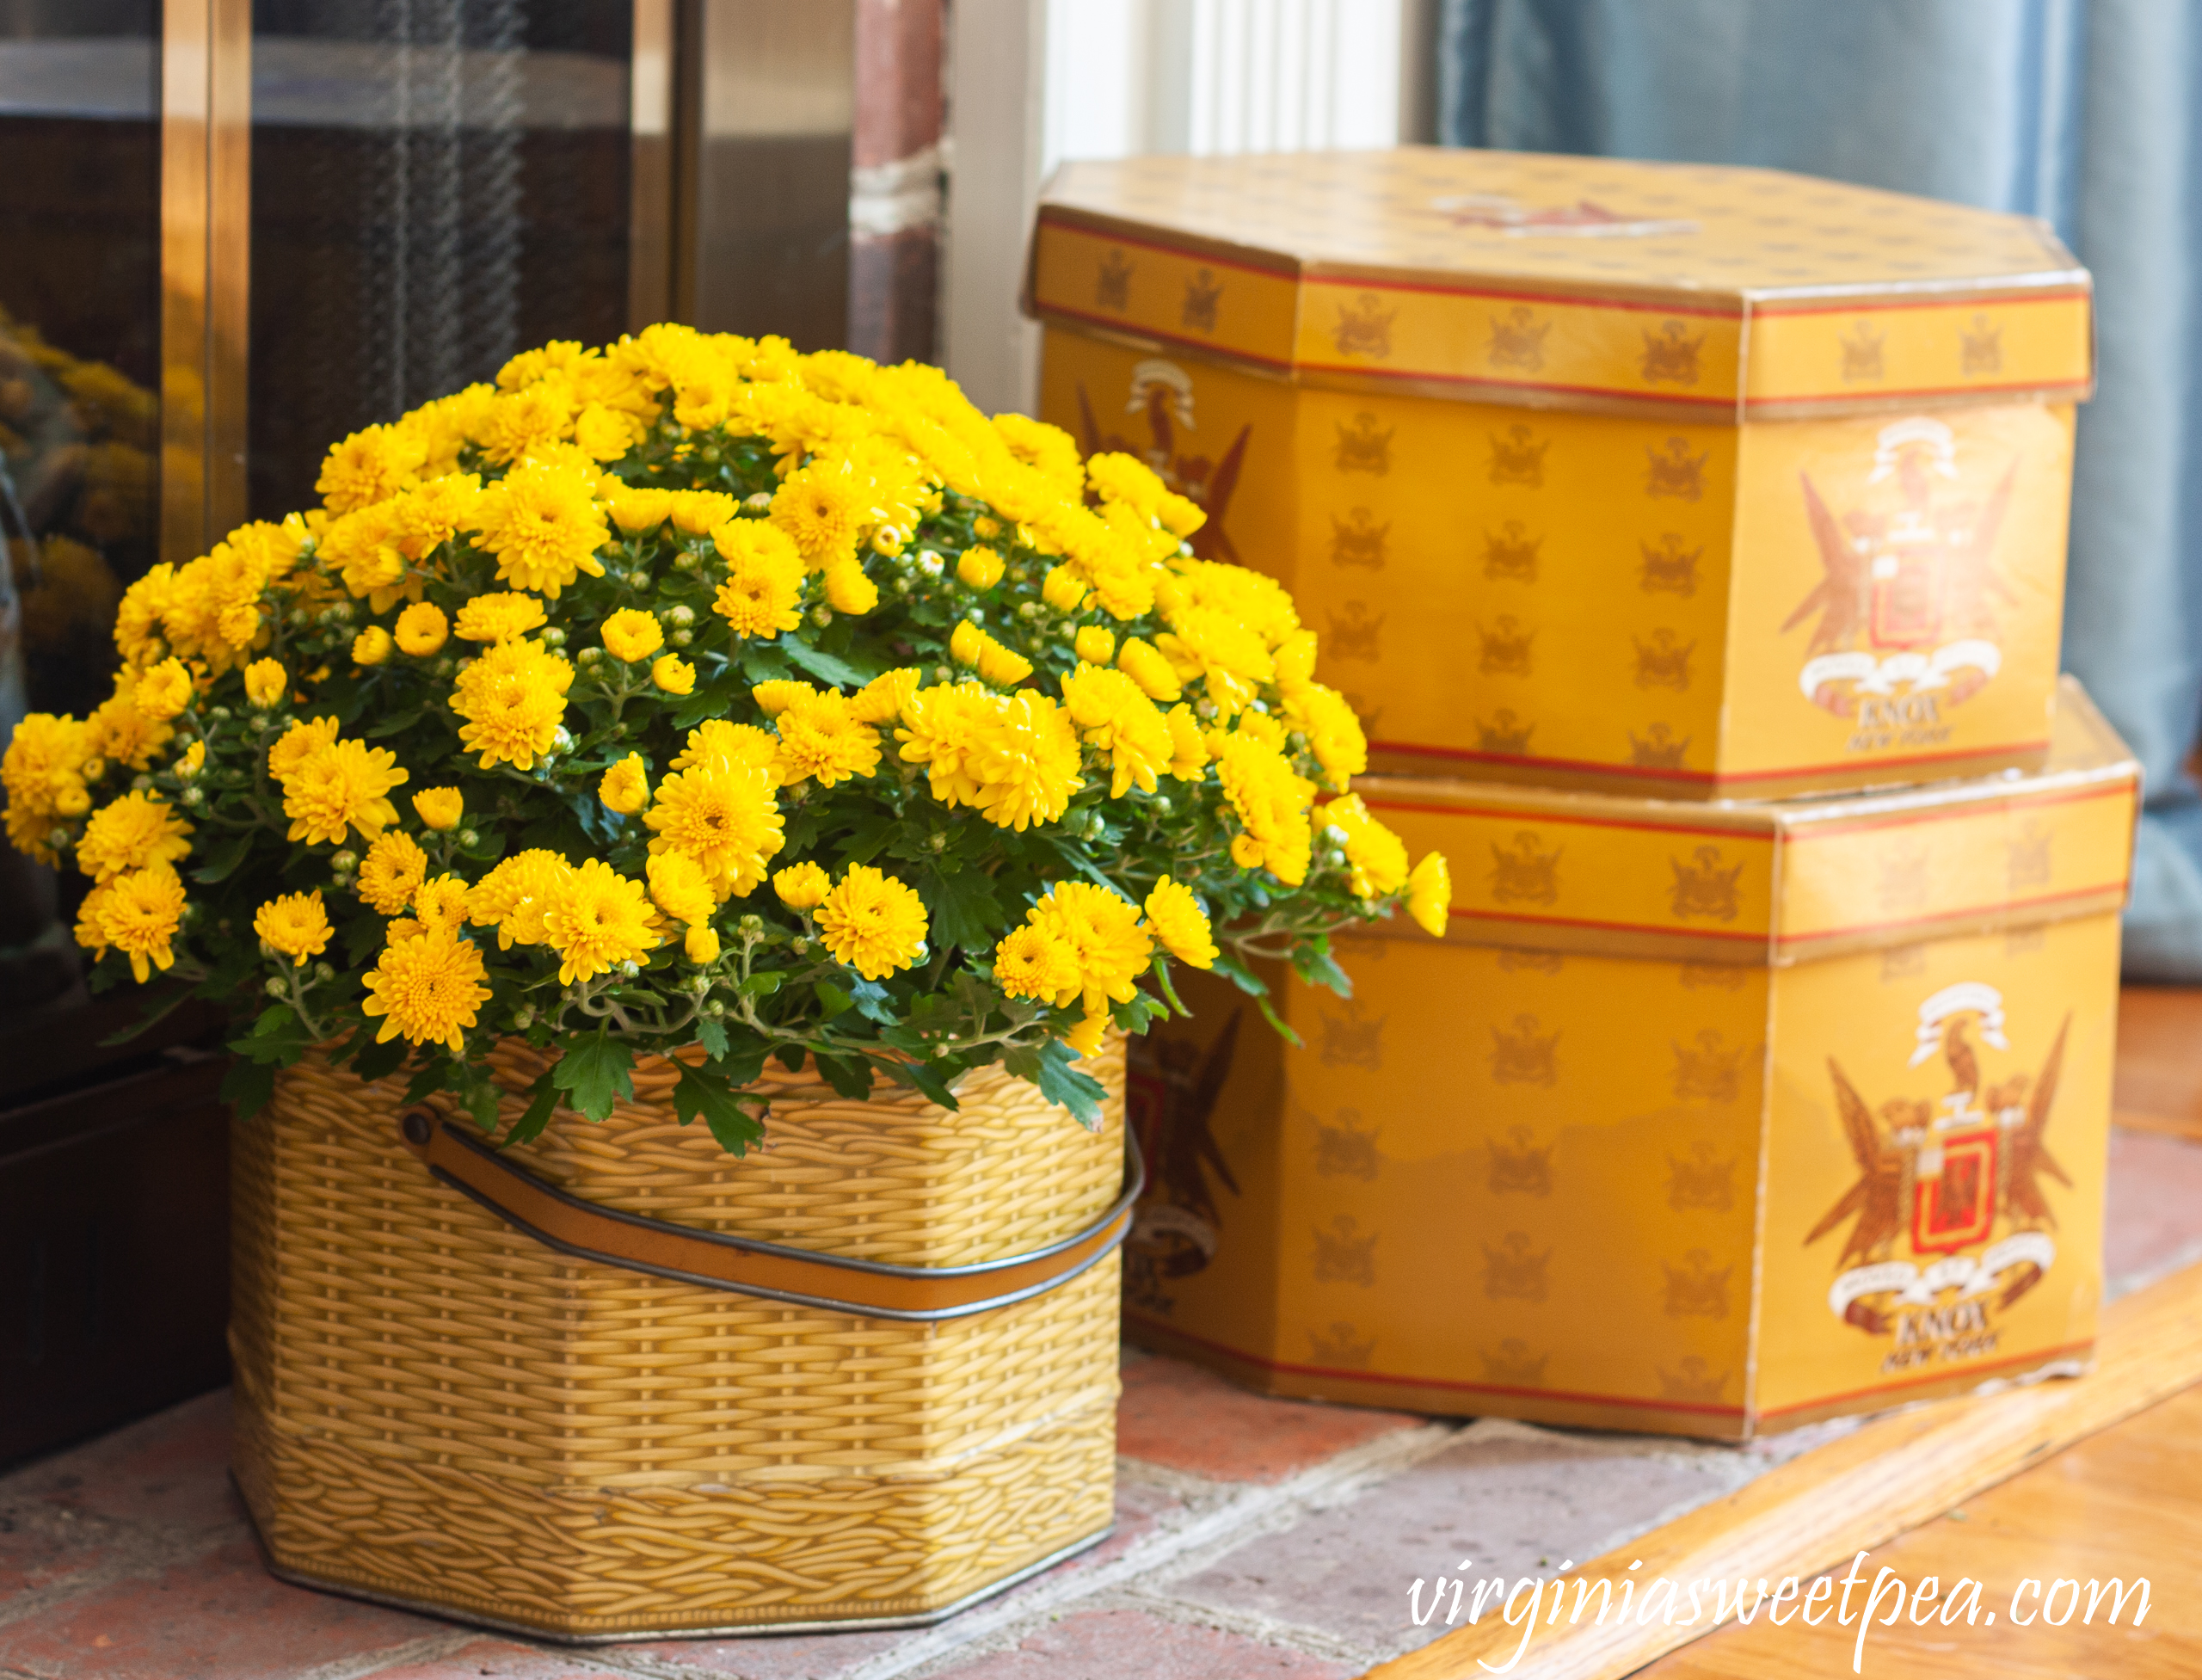 Knox New York hat boxes along with a mum in a vintage basket tin decorate a fireplace hearth for fall.